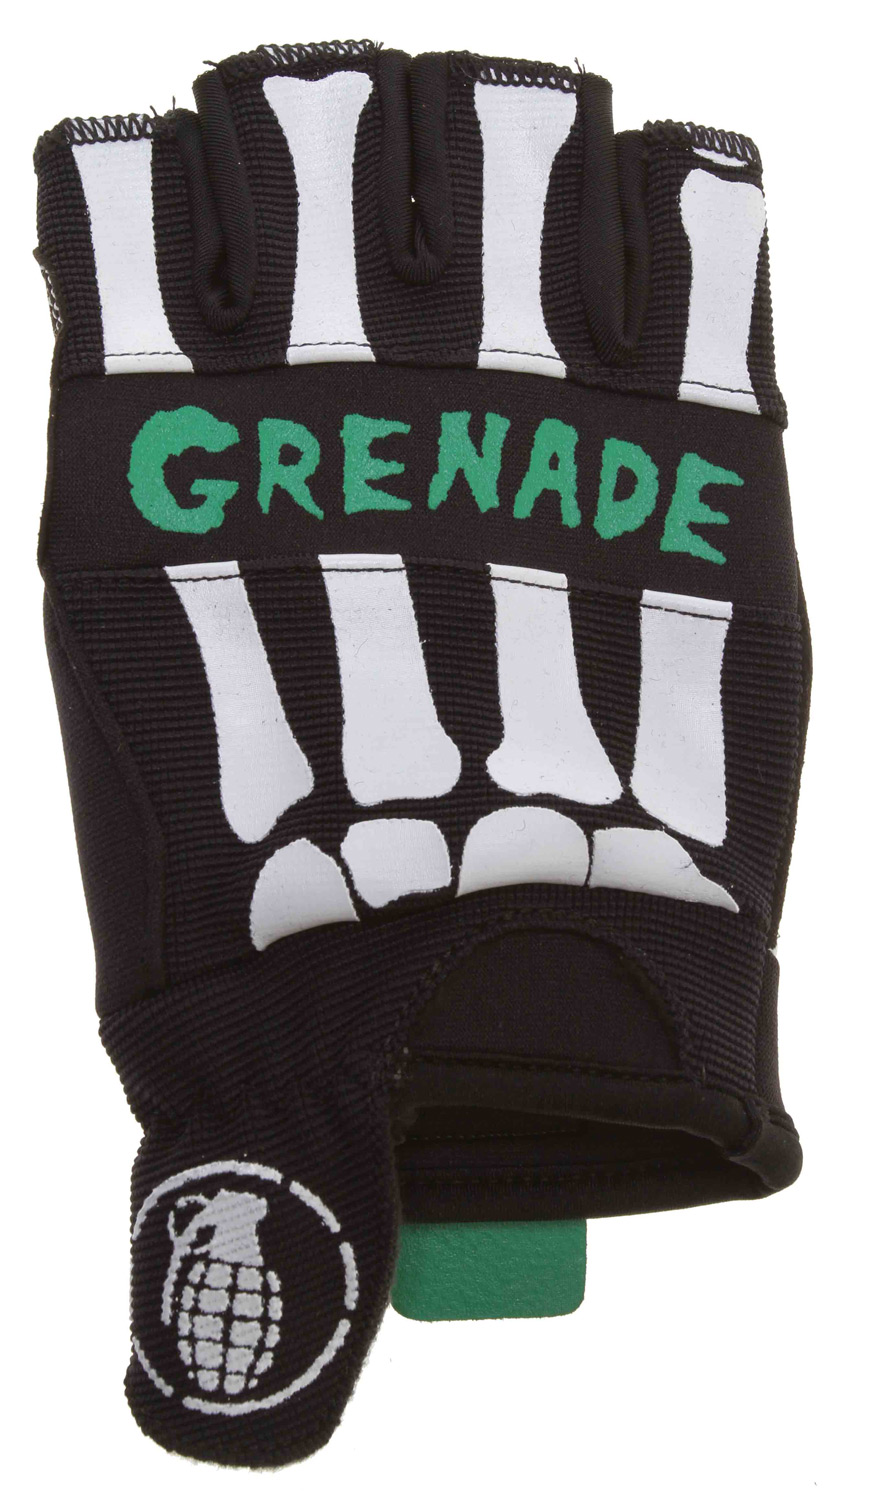 MTB Grenade Bender Fingerless Bike Gloves Black/Teal - $10.37